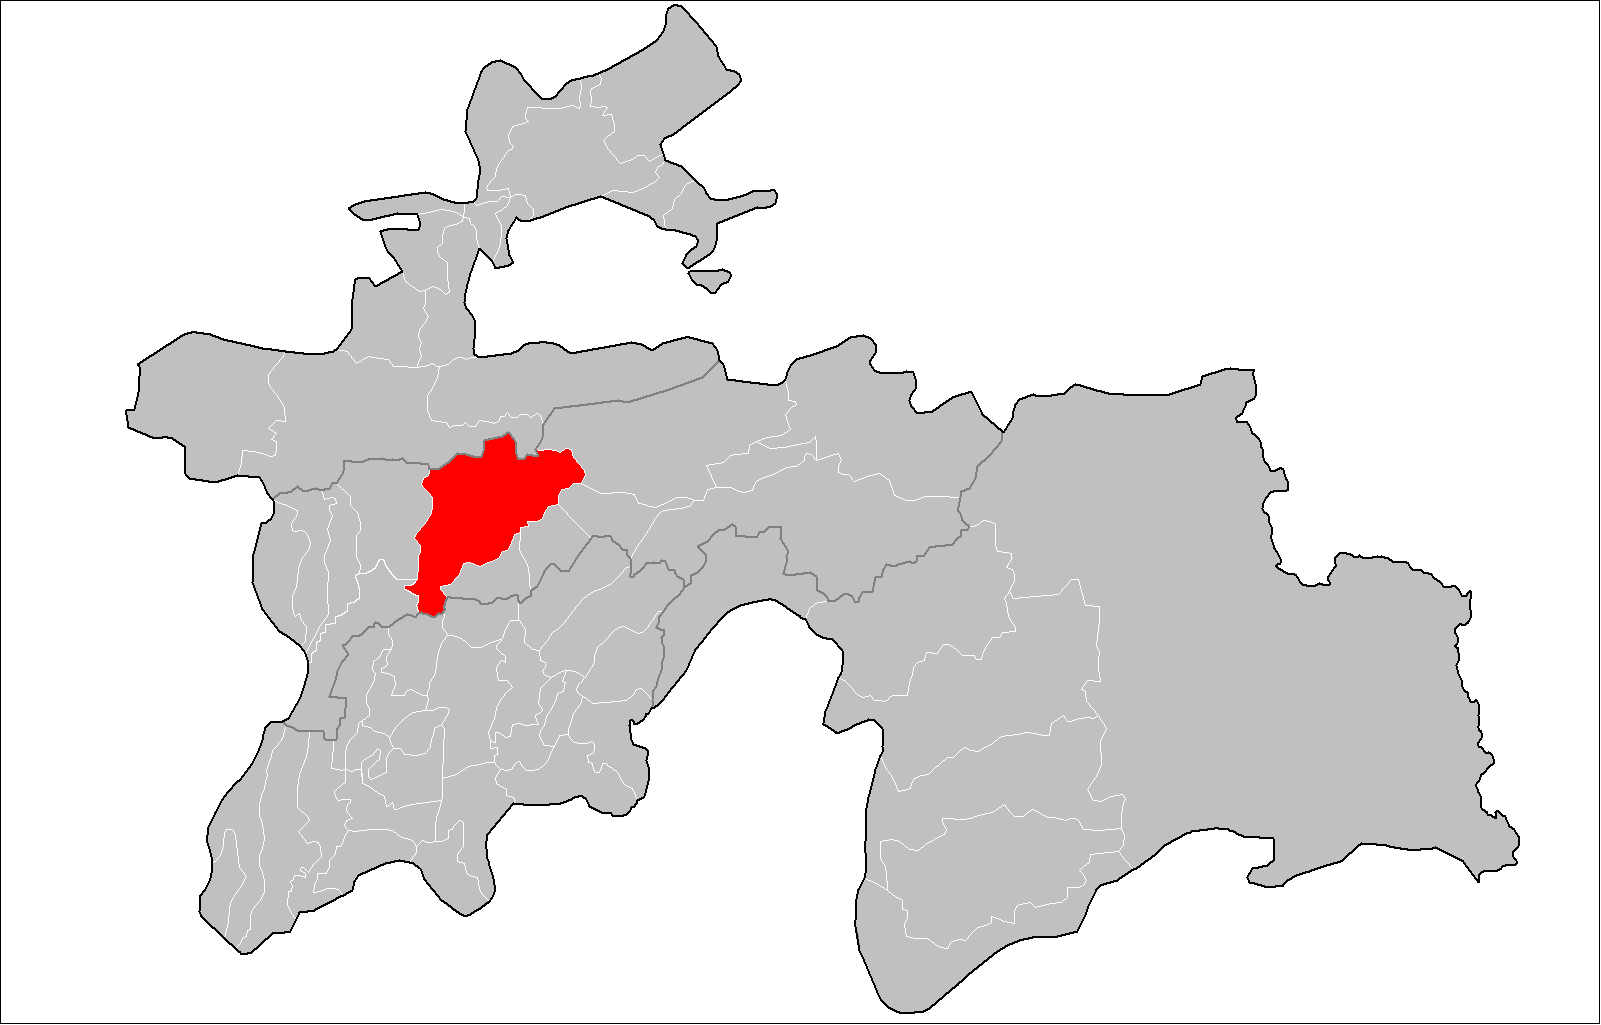 FileLocation of Vahdat District in Tajikistanpng Wikimedia Commons